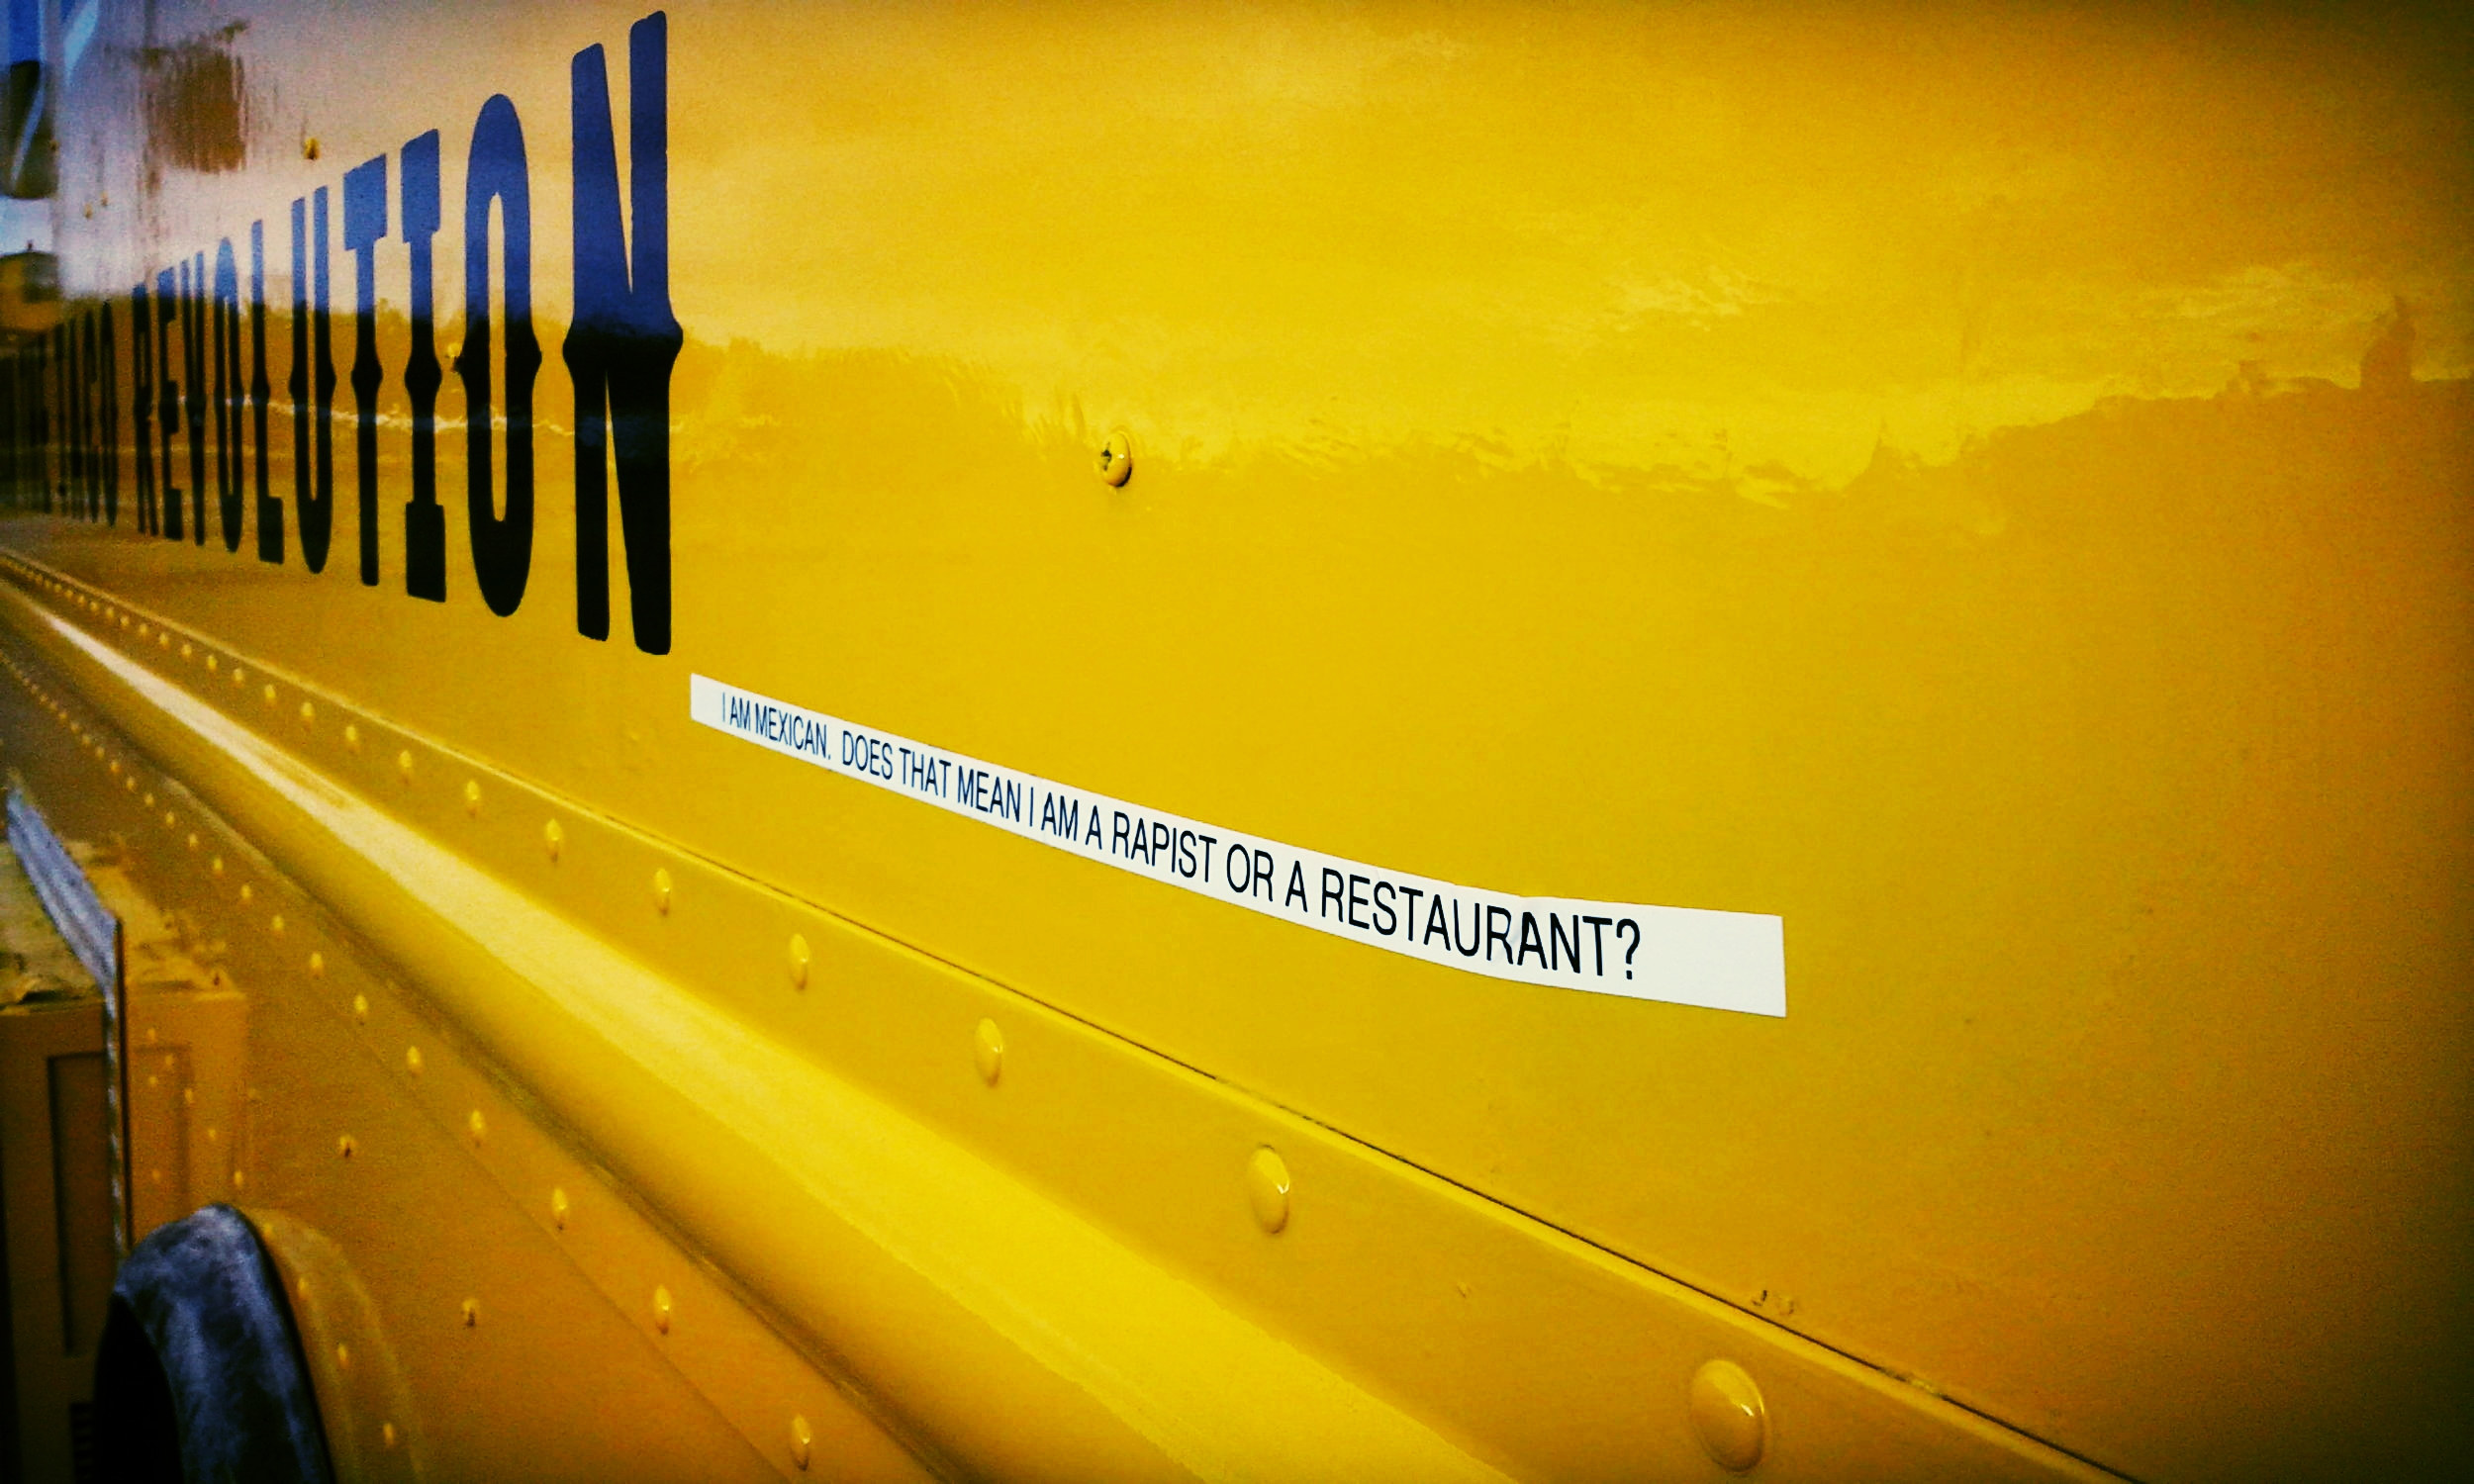 """""""I AM MEXICAN: DOES THAT MEAN I AM A RAPIST OR A RESTAURANT?"""" Sticker, Placed on Food Truck, Plum Island Airport, Newbury, MA."""